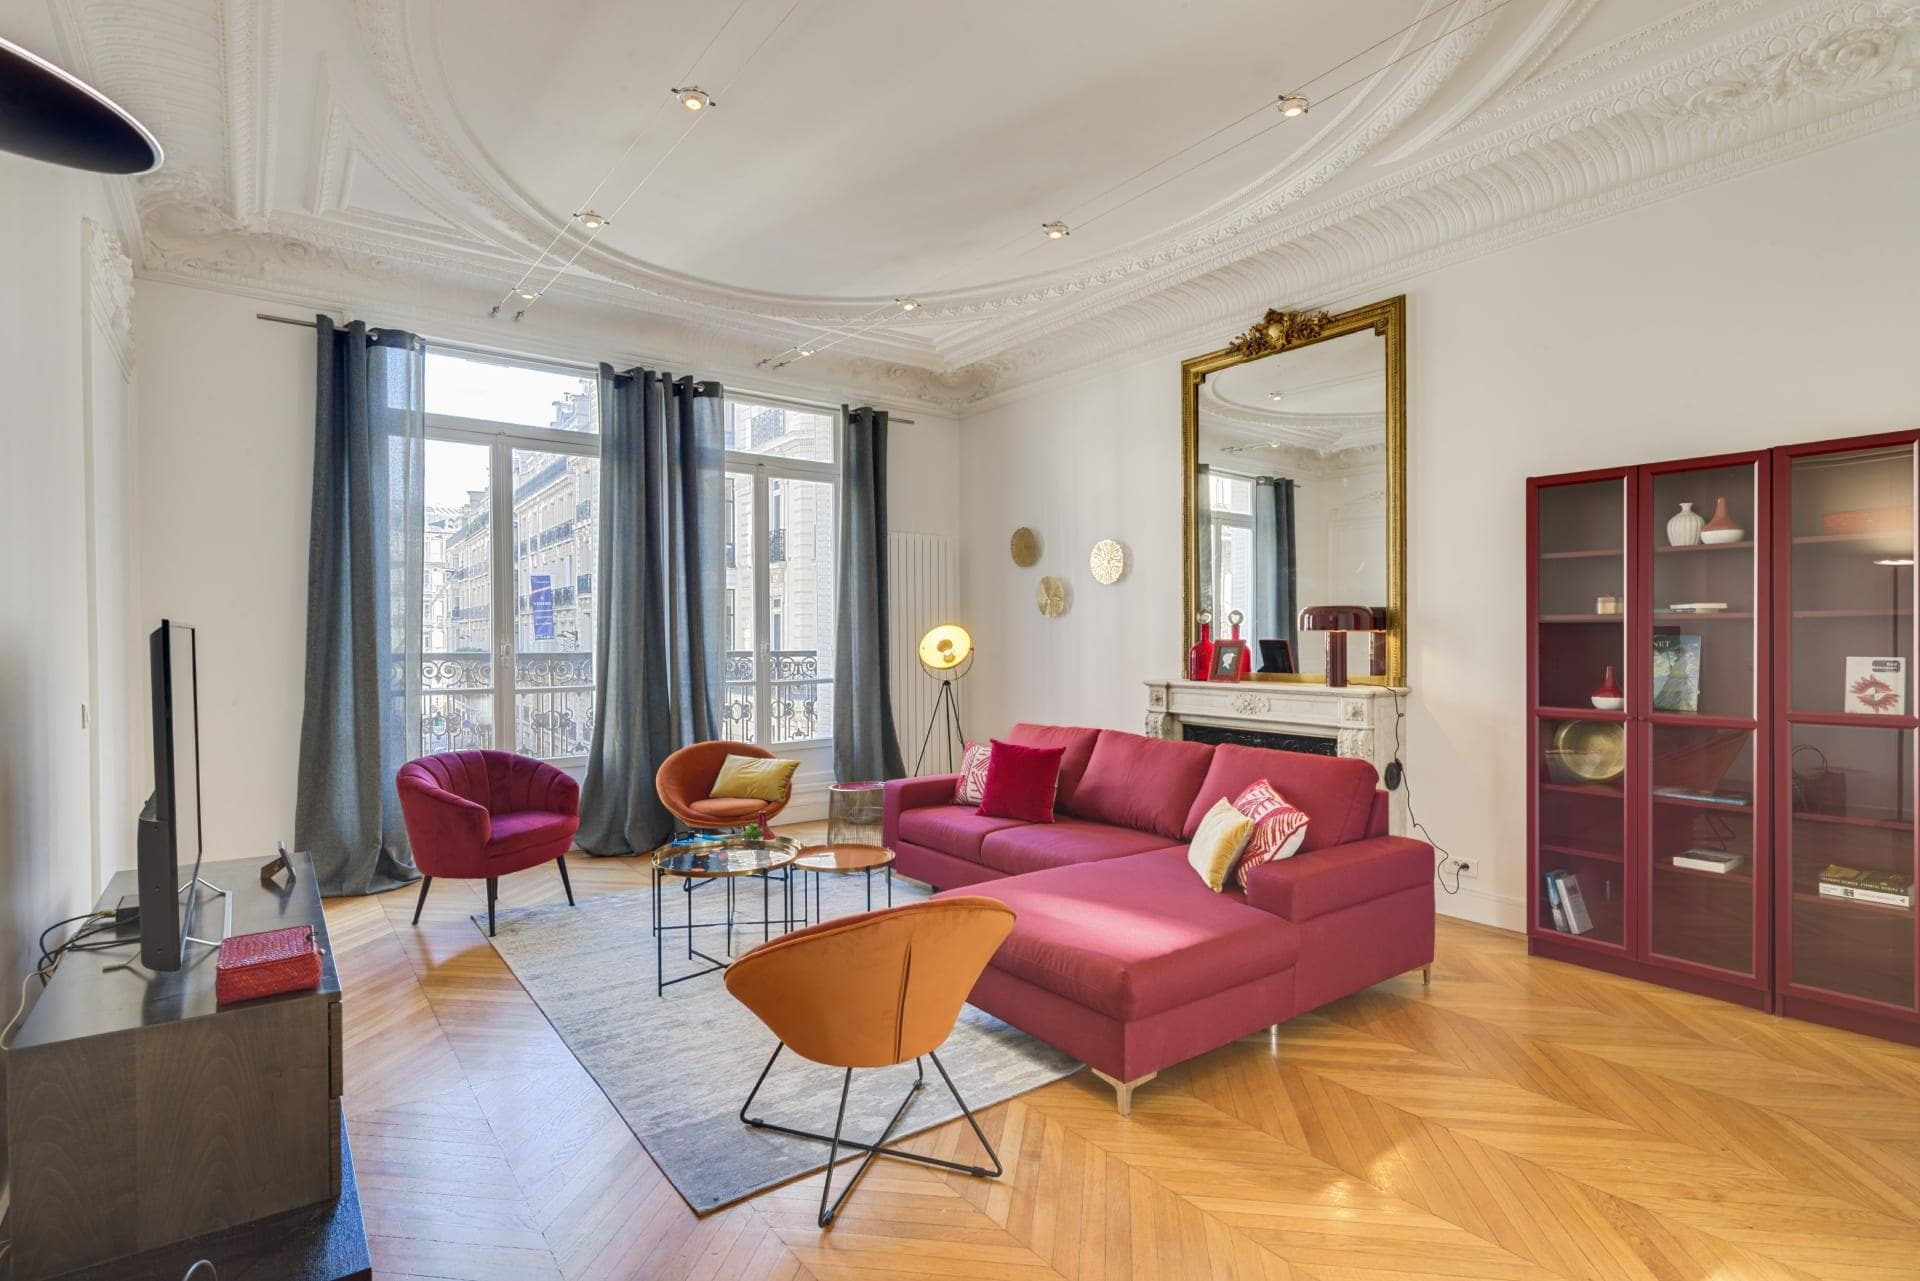 Property Image 1 - Stylish Apartment in the Champs Elysees Neighbourhood of the best of Paris